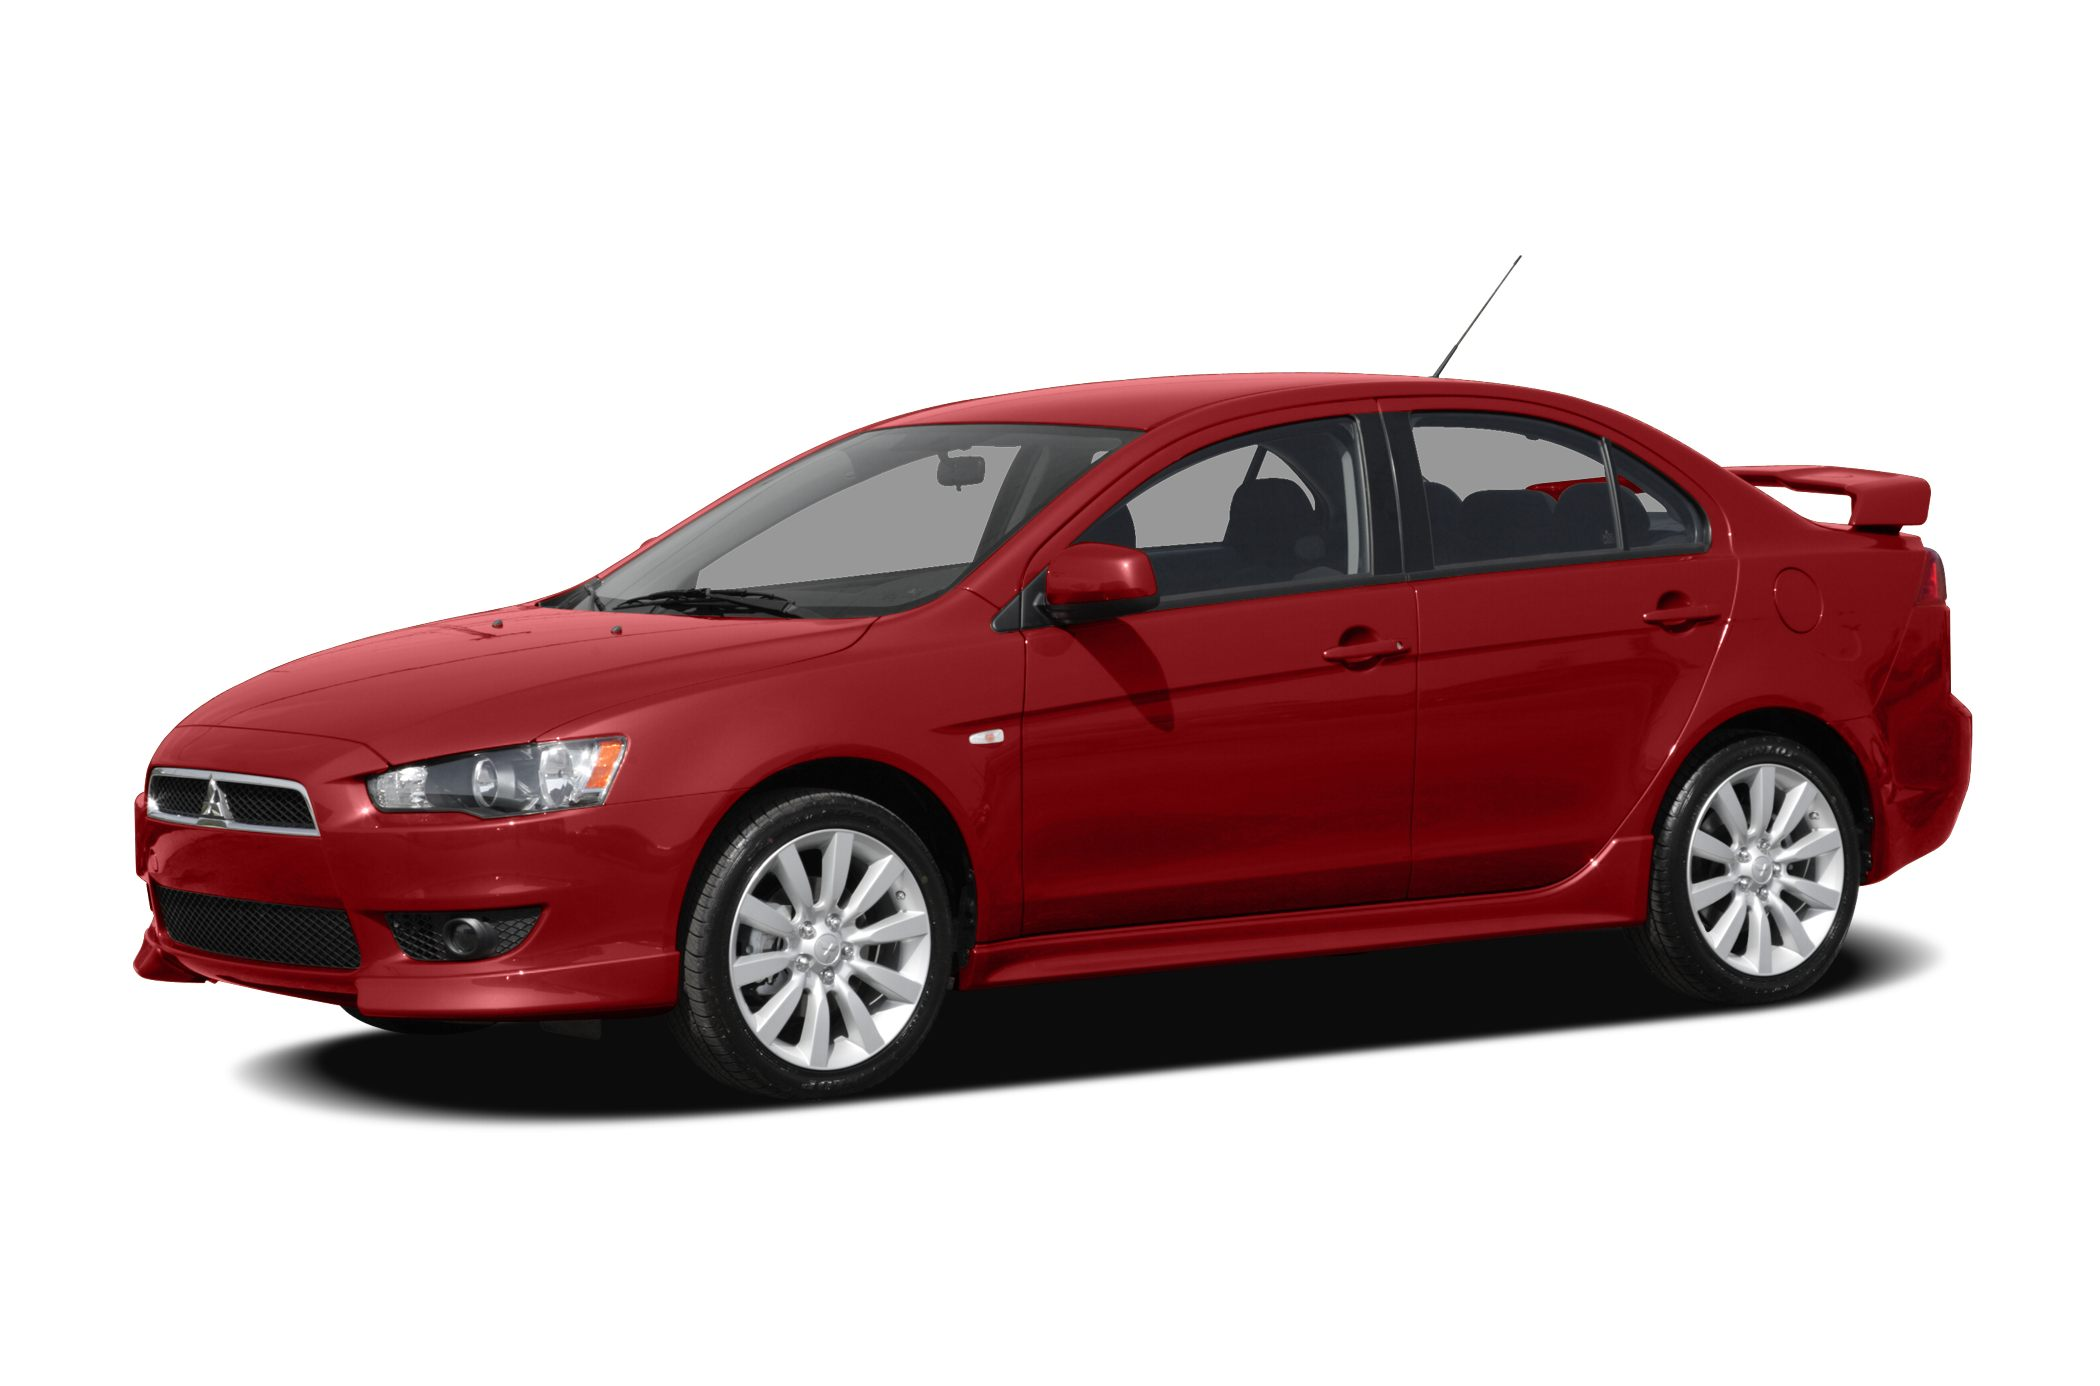 2009 Mitsubishi Lancer ES Sedan for sale in Killeen for $9,545 with 103,850 miles